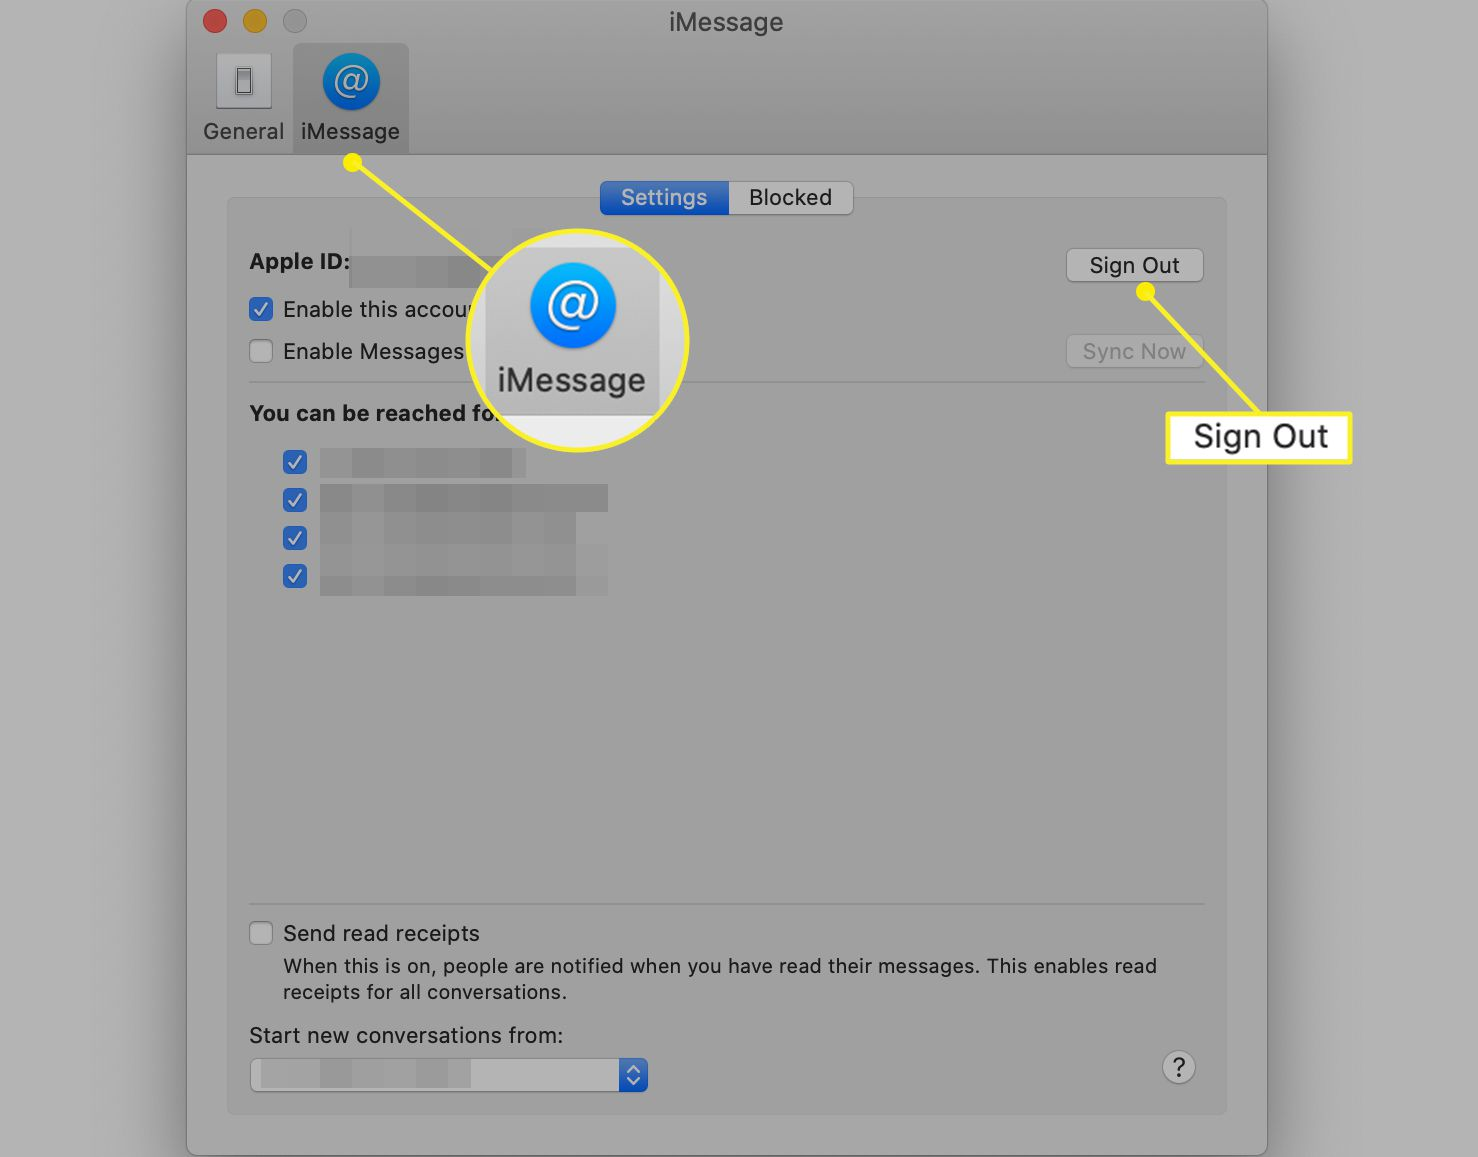 iMessage preference screen with Sign Out highlighted